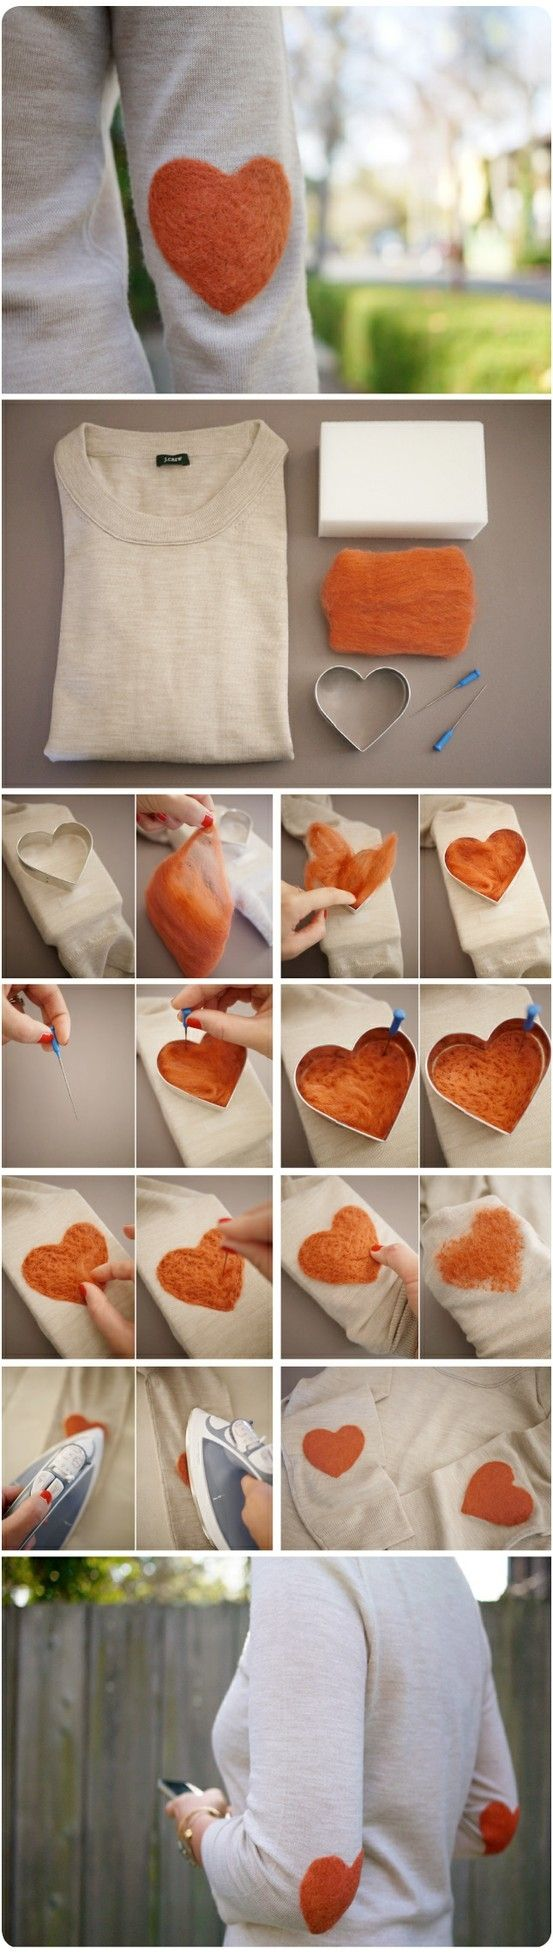 DIY Heart Shaped Elbow patches. Seems easy enough to do and they are so cute! Just need to find a jumper to do this with now. by phyllis